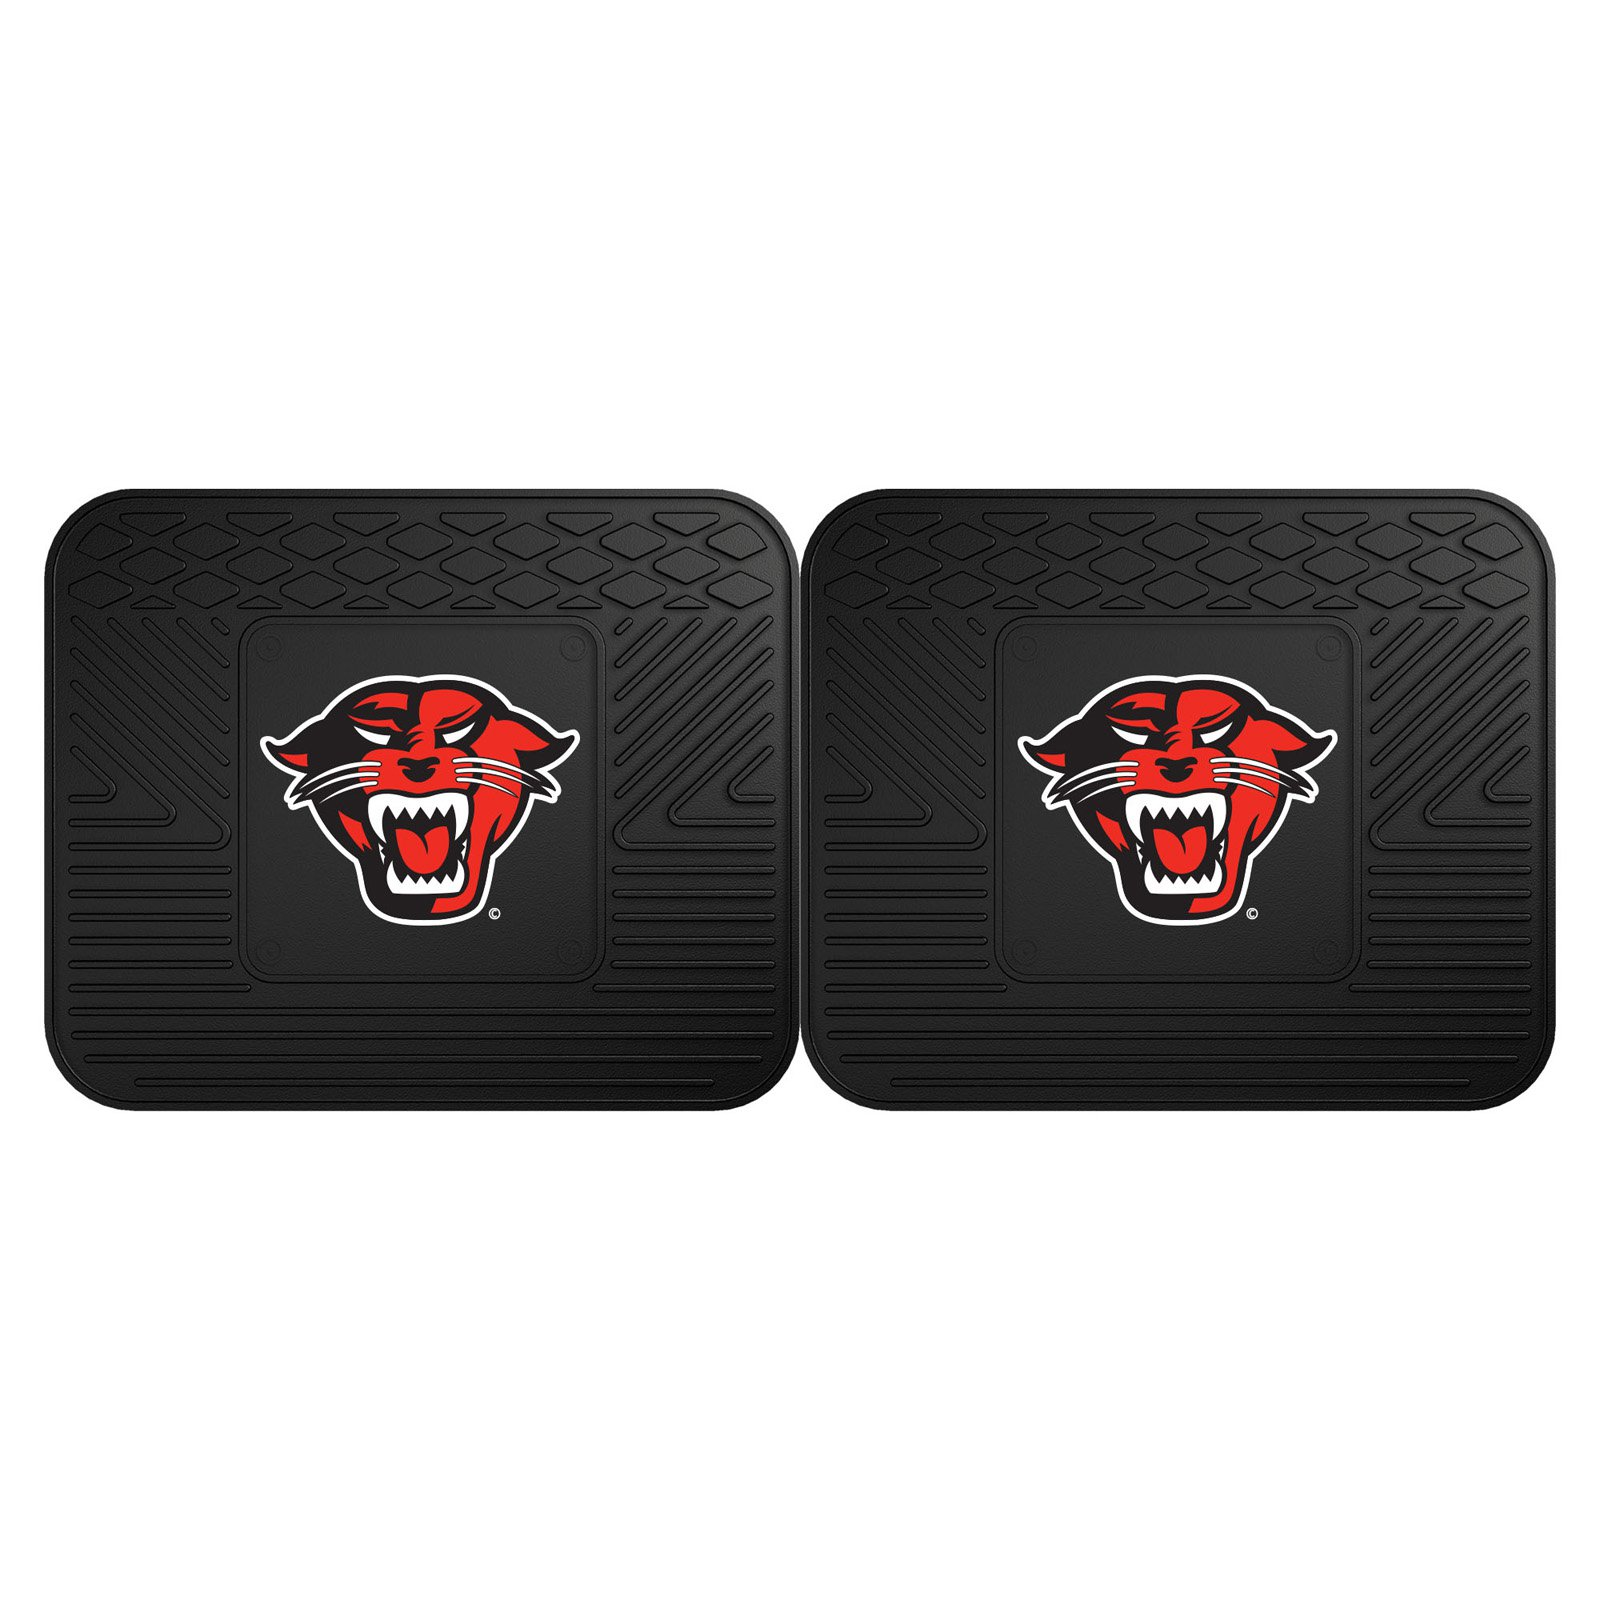 Fan Mats NCAA Car Backseat Utility Mat - Set of 2